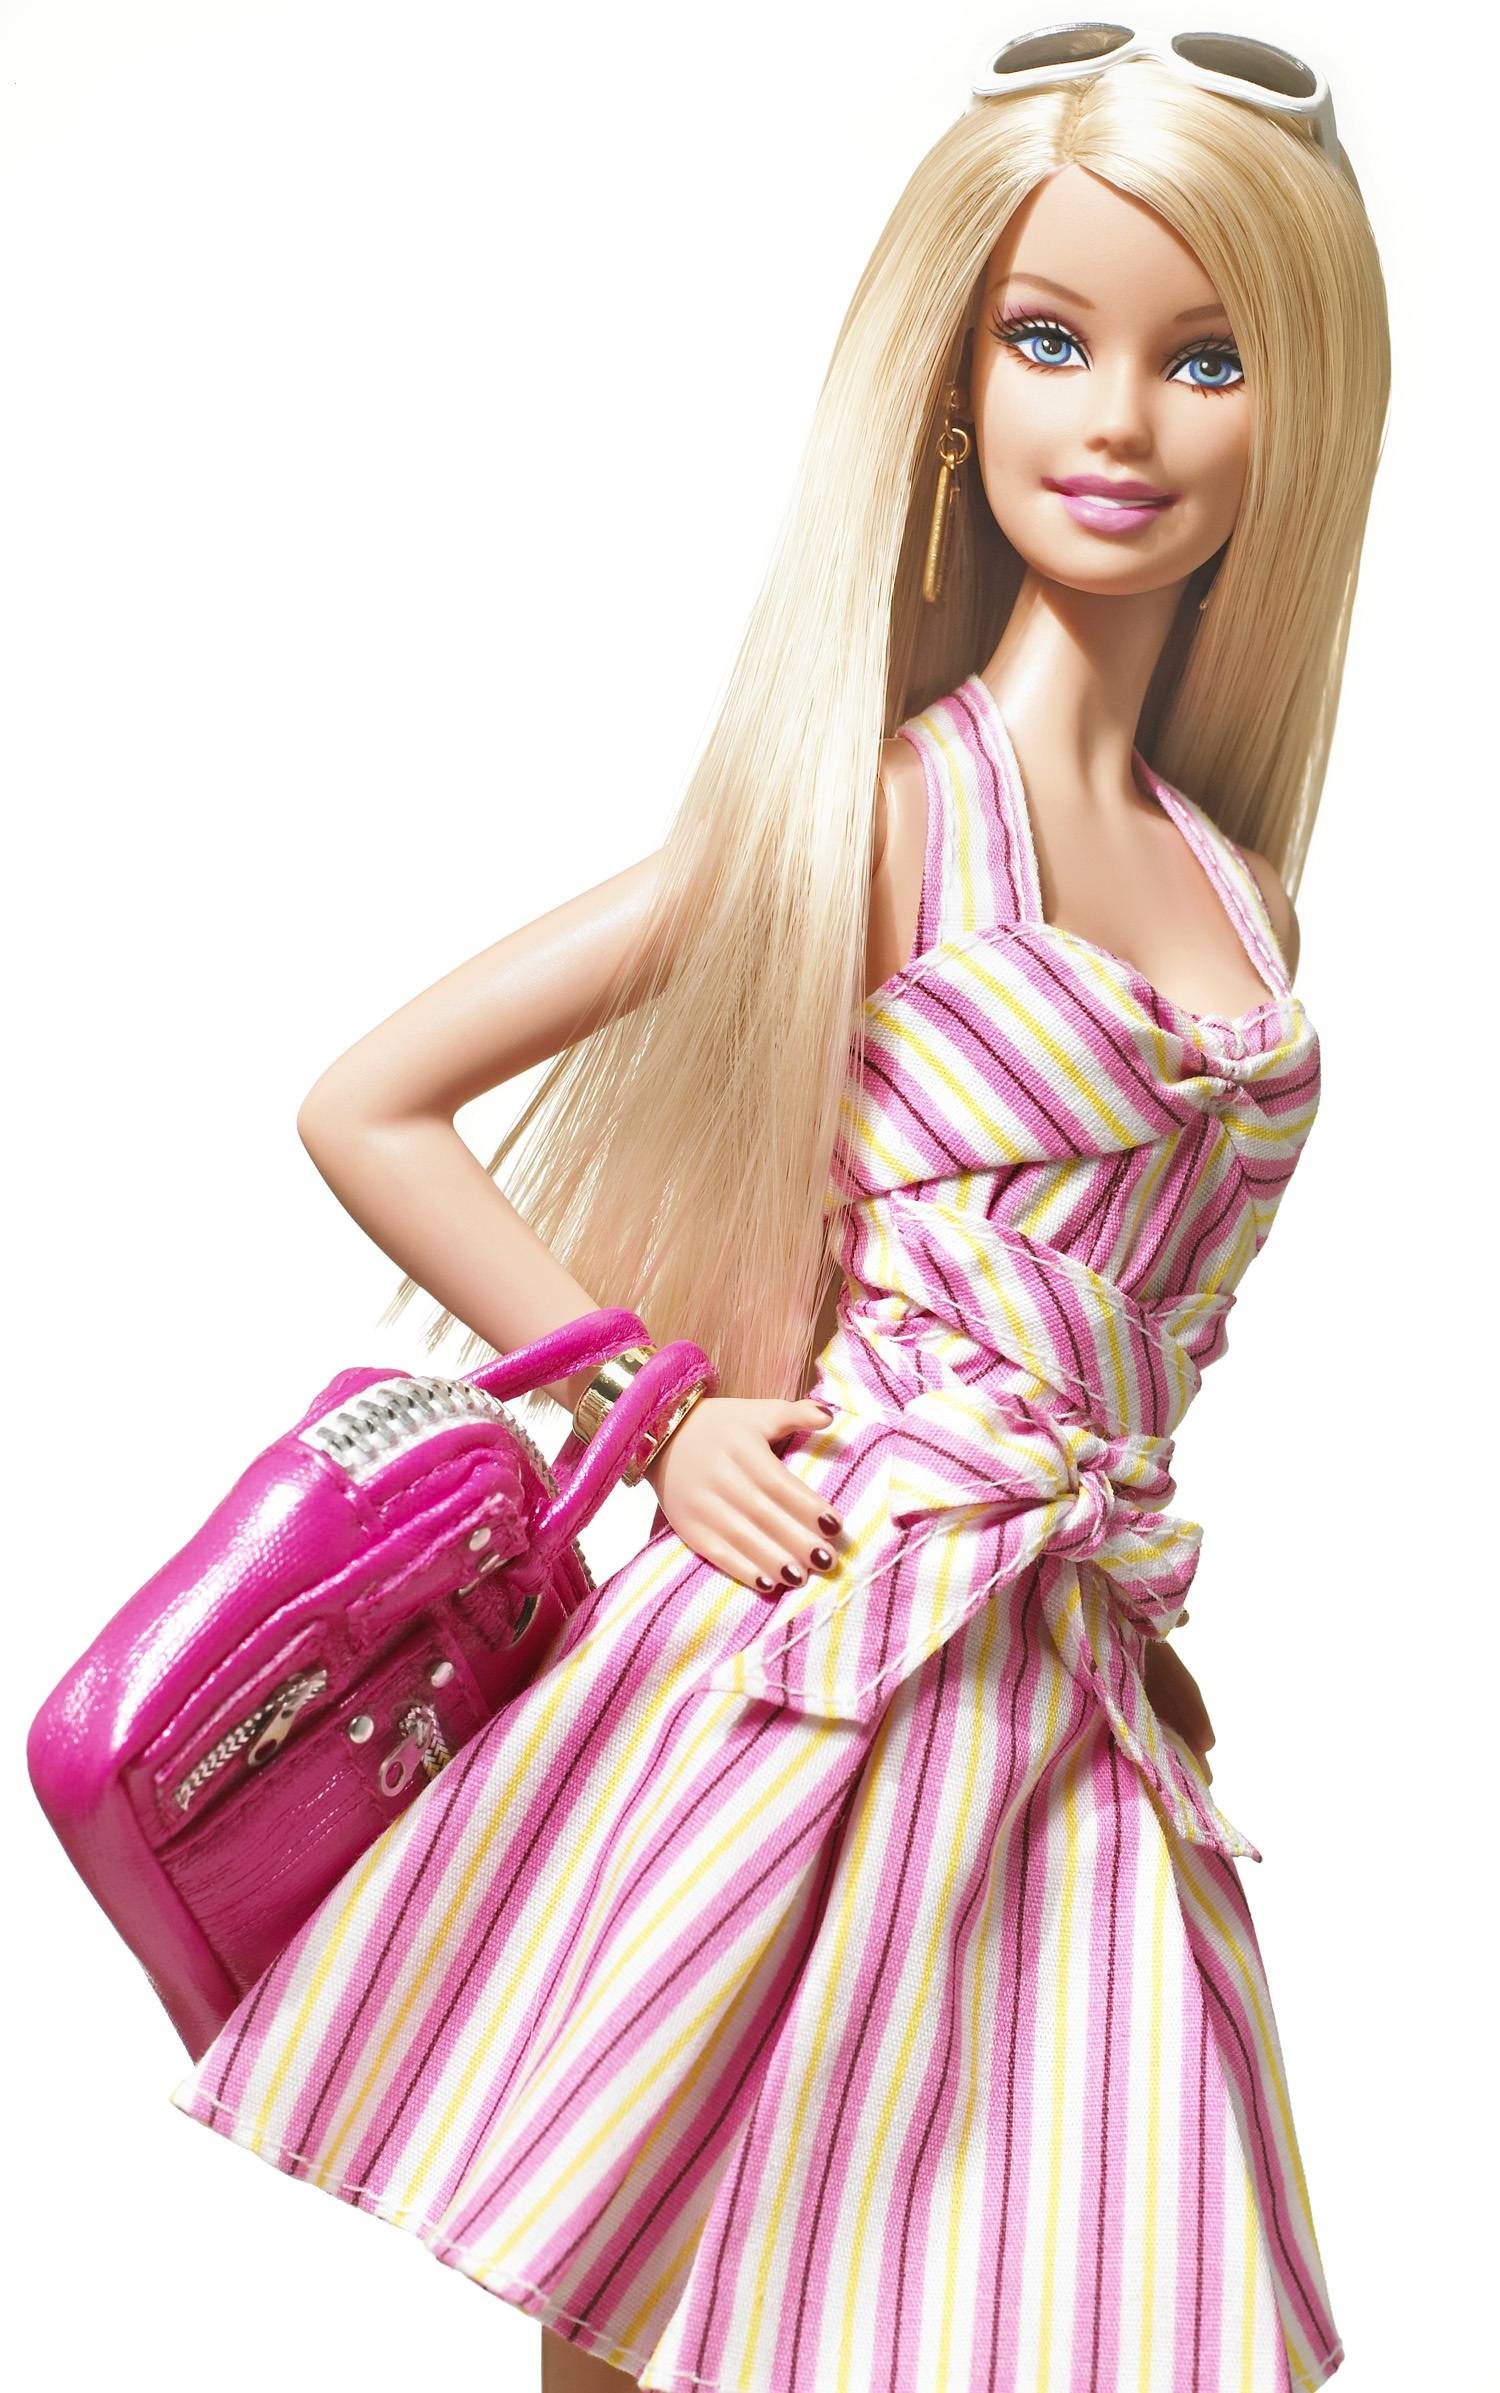 Most beautiful barbie doll clipart.